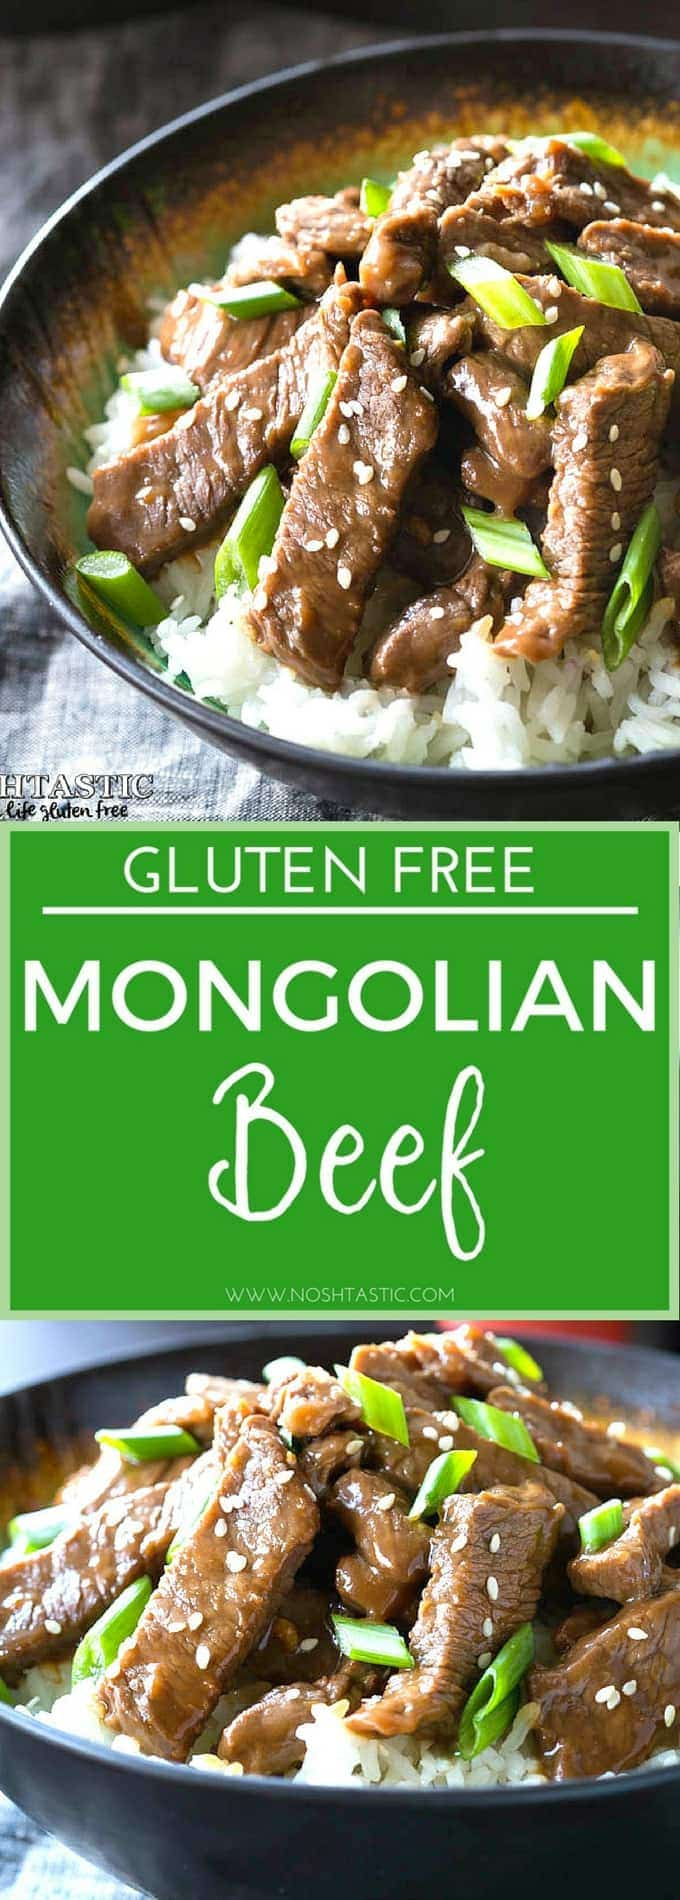 Gluten Free Mongolian Beef recipe you can make at home in ten minutes, a PF Chang's Copycat Recipe! Made with a lovely sauce of gluten free soy sauce, garlic, ginger and brown sugar.